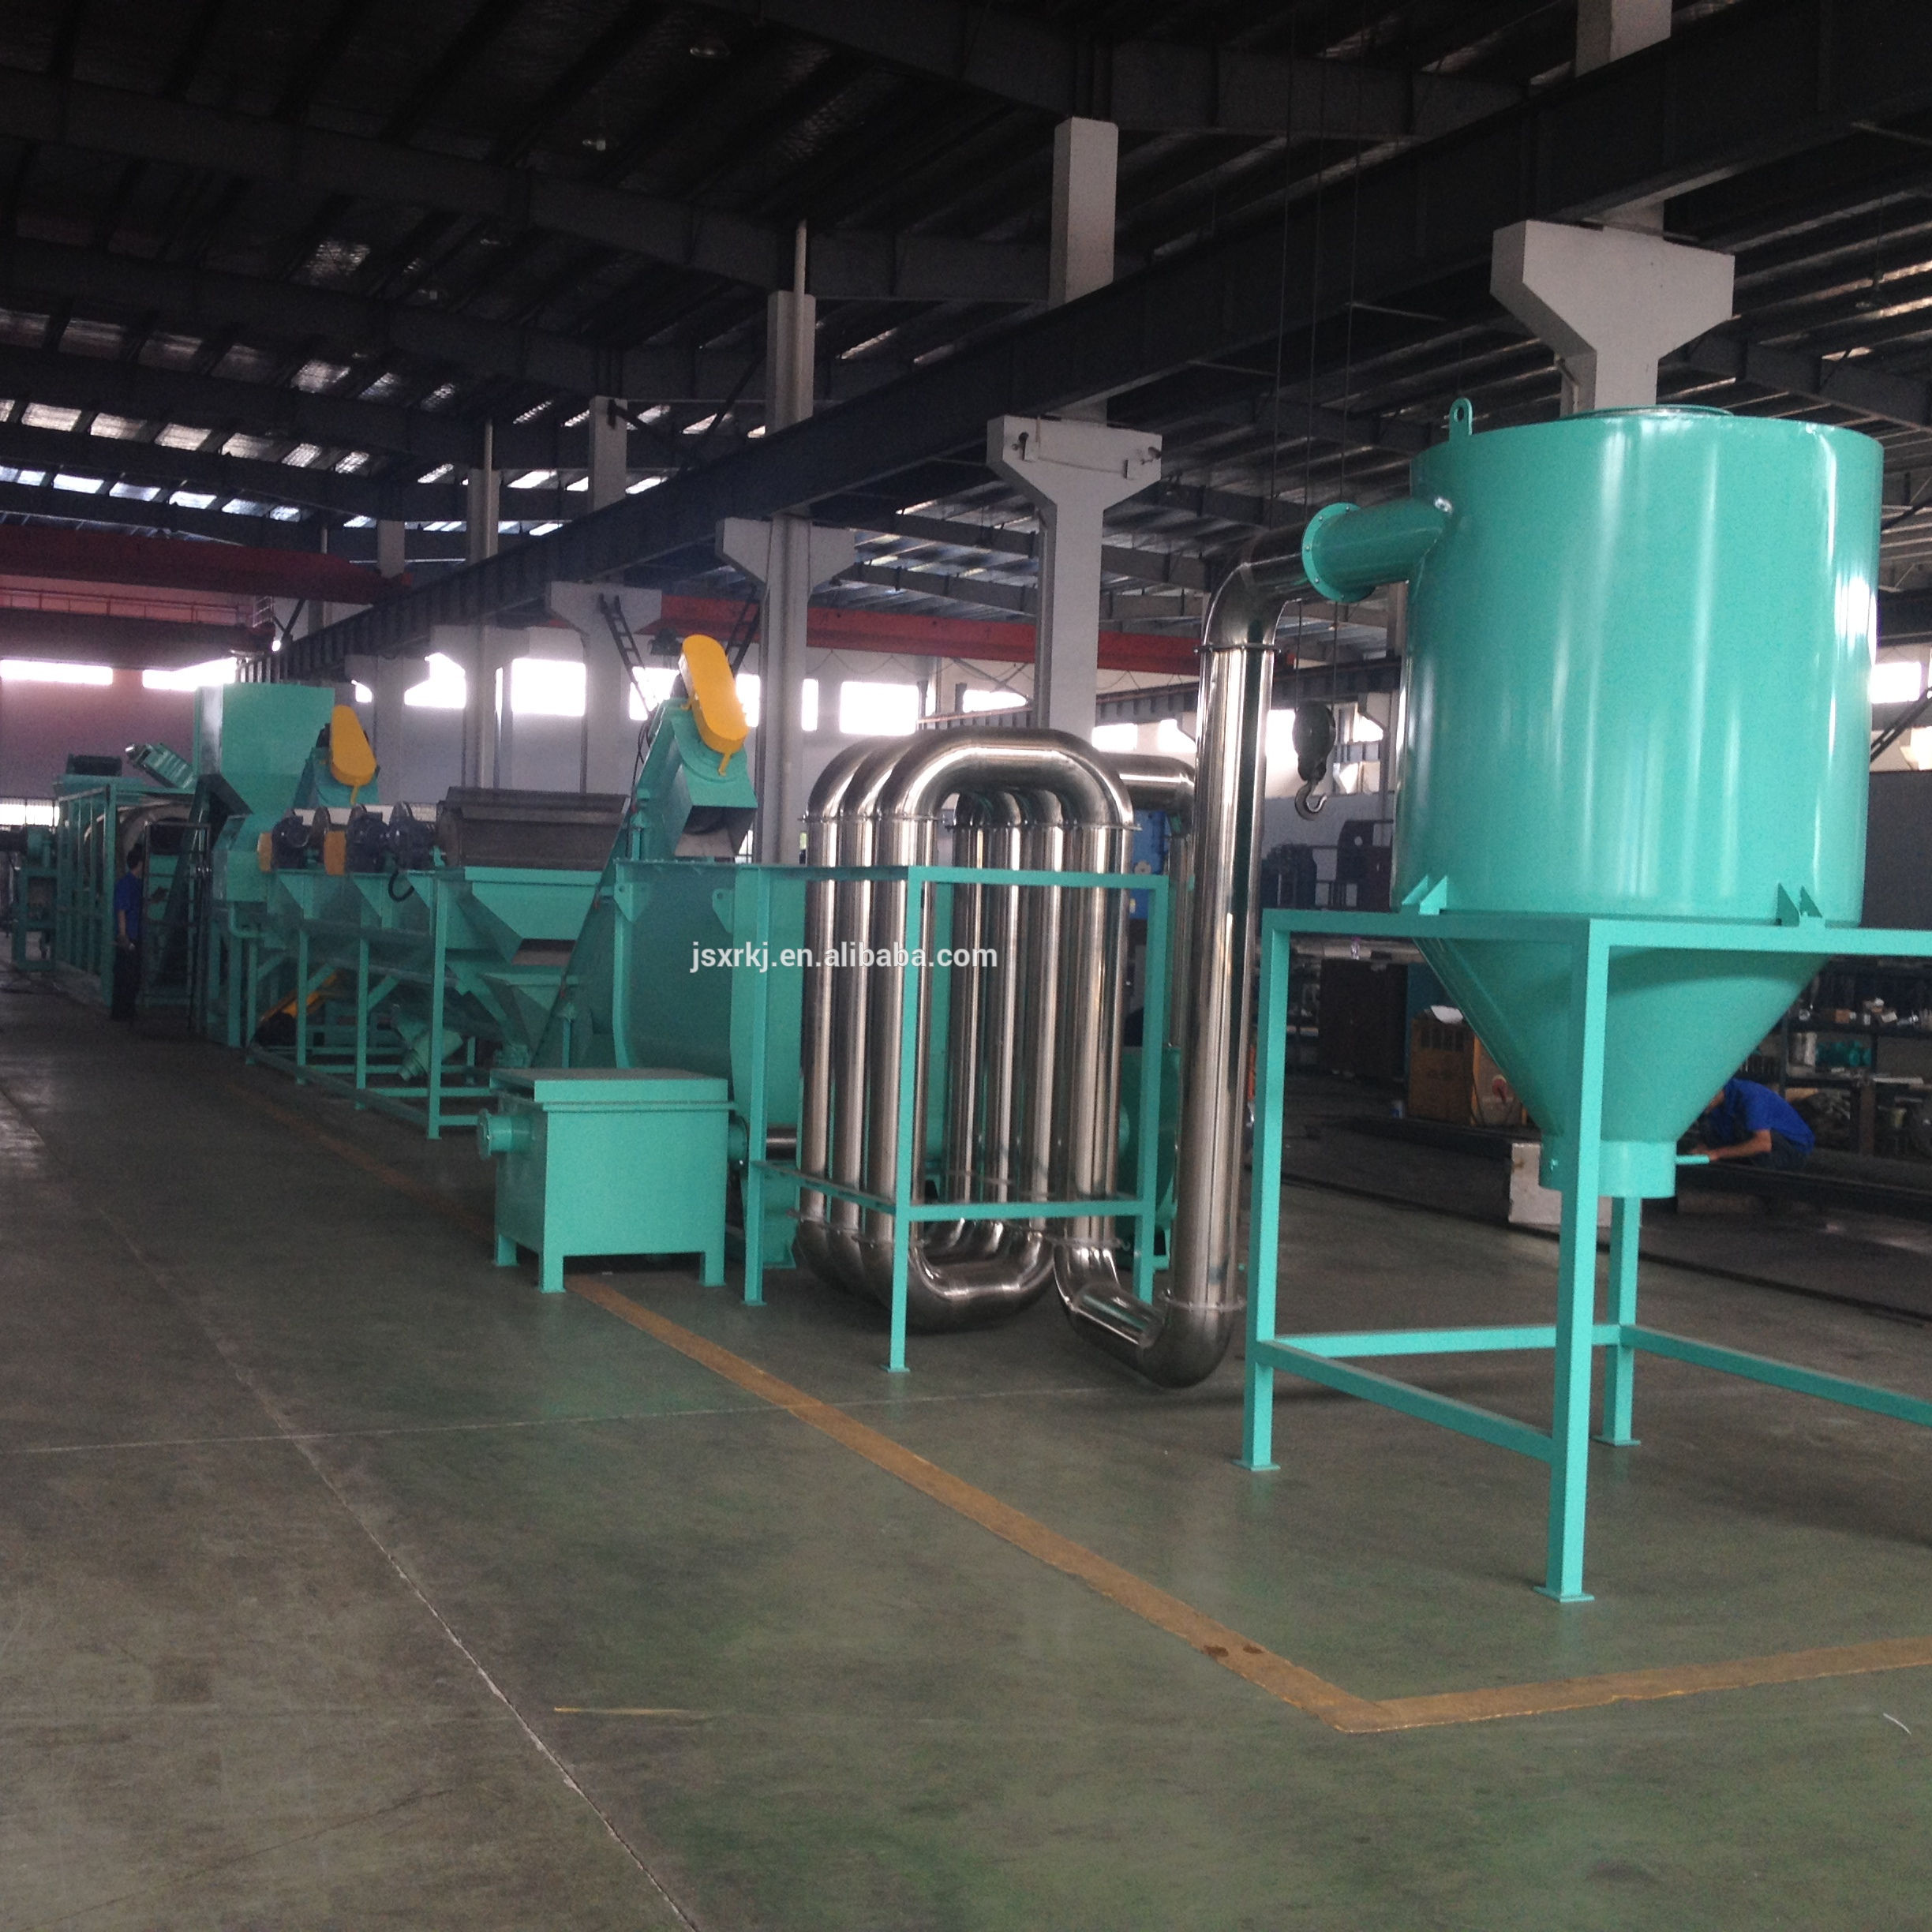 pp recycle material for bag pe film washing crushing line with hot washer